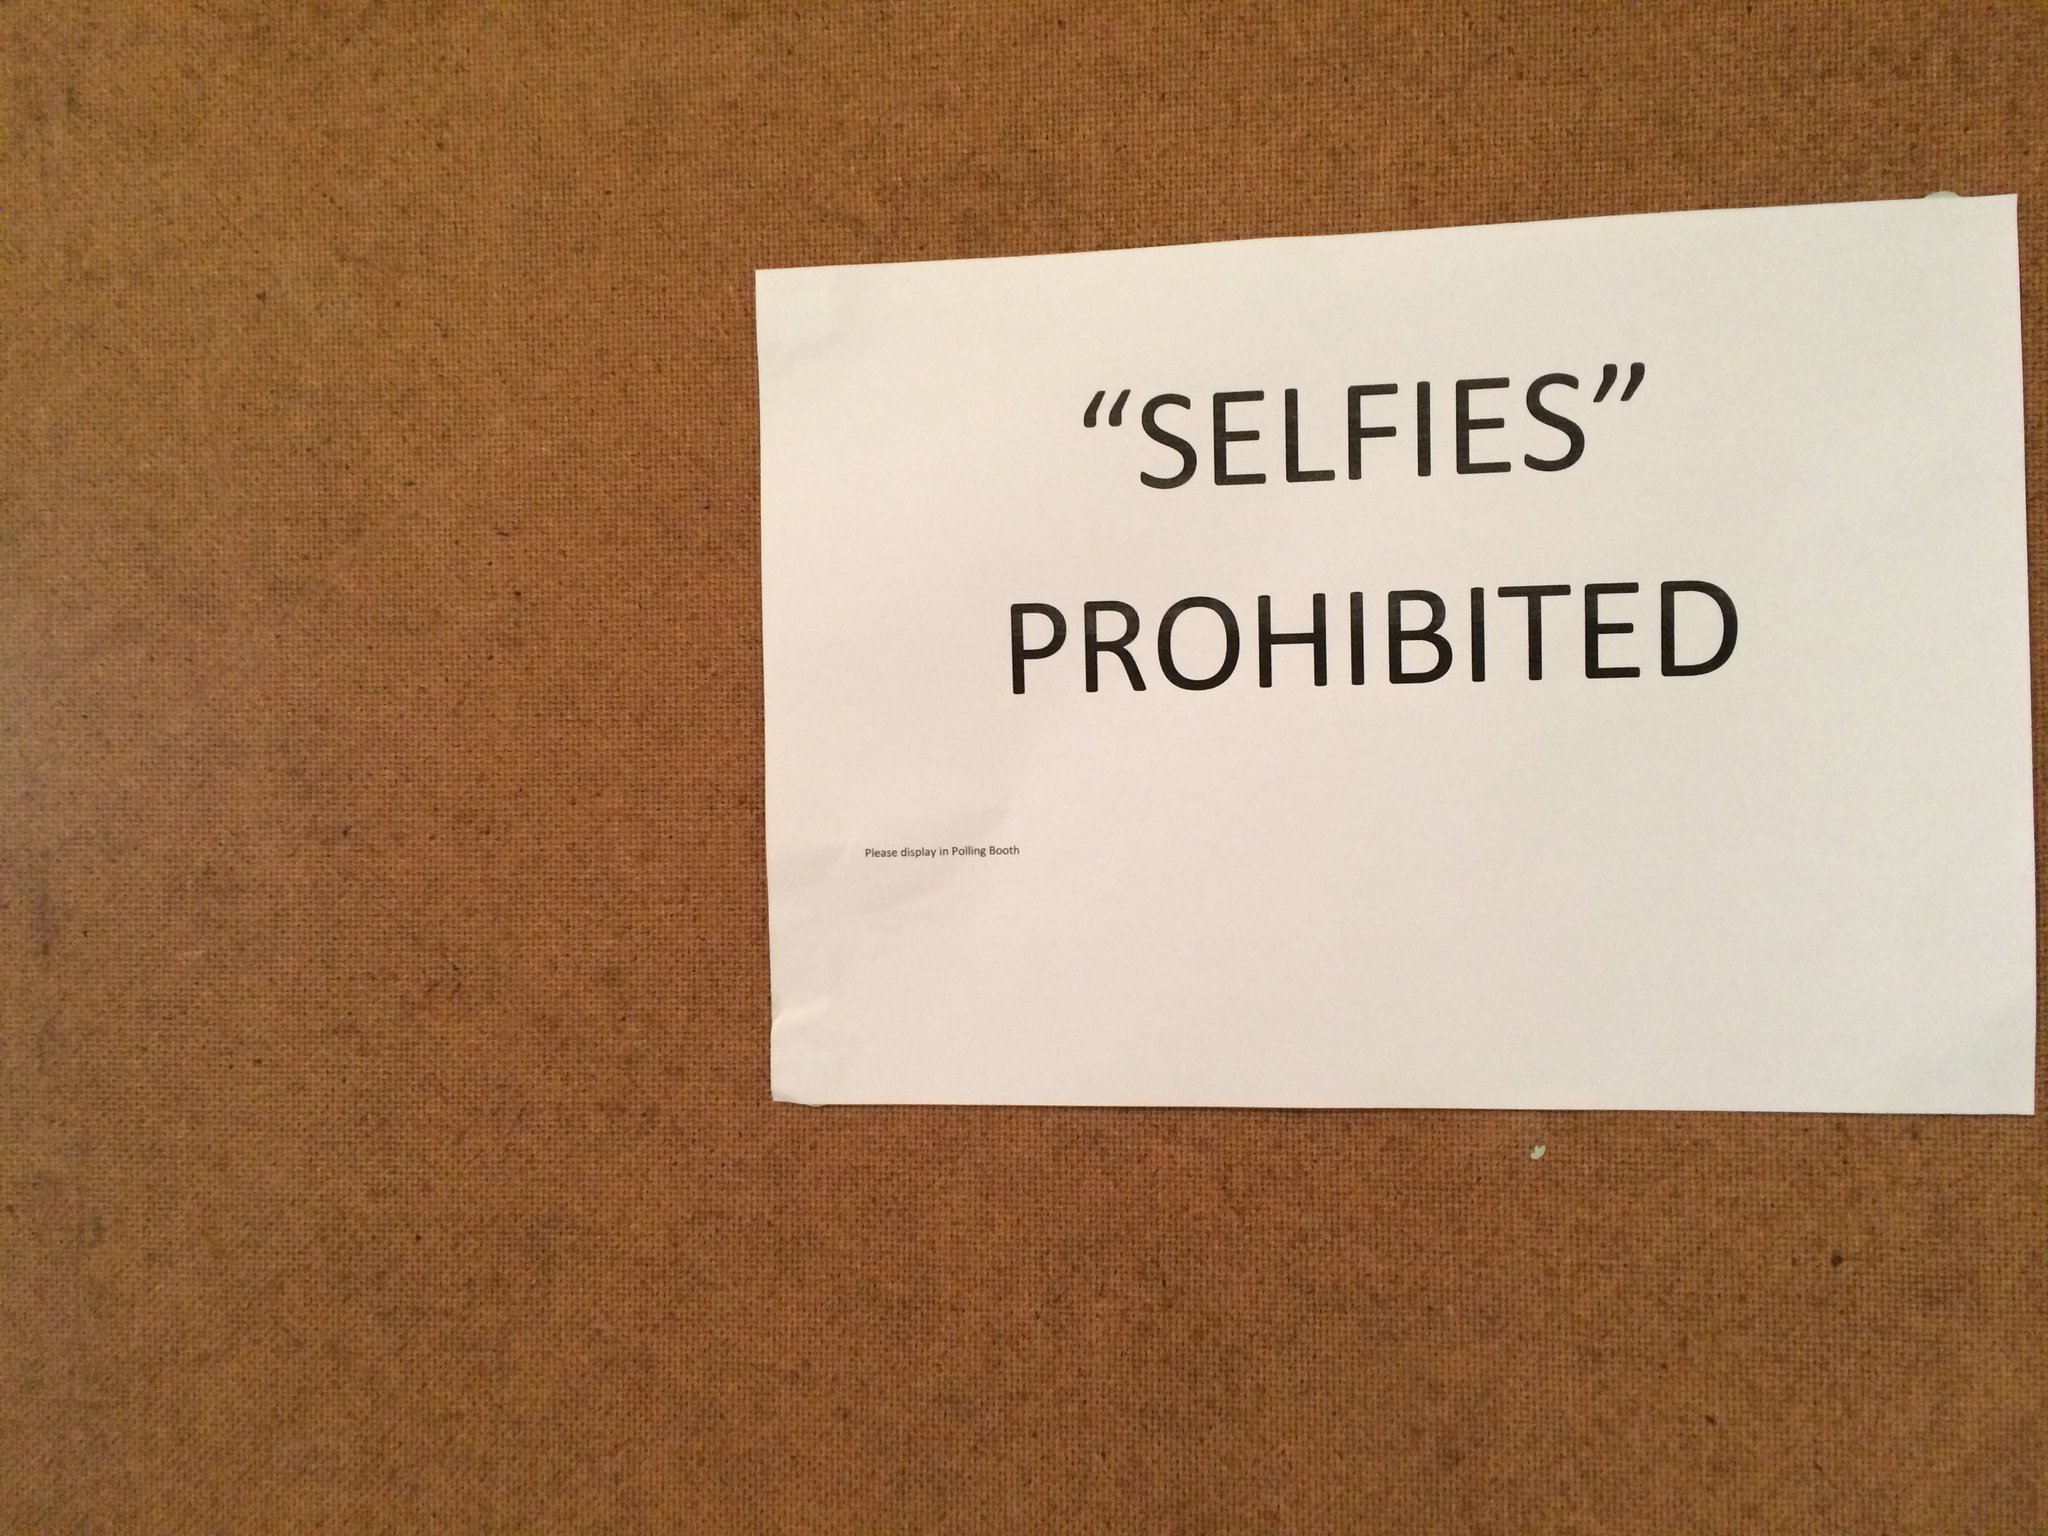 """""""Selfies"""" prohibited at the polling station in Crosspatrick, Co. Kilkenny. Photo: MaryAnn Vaughan/KCLR"""